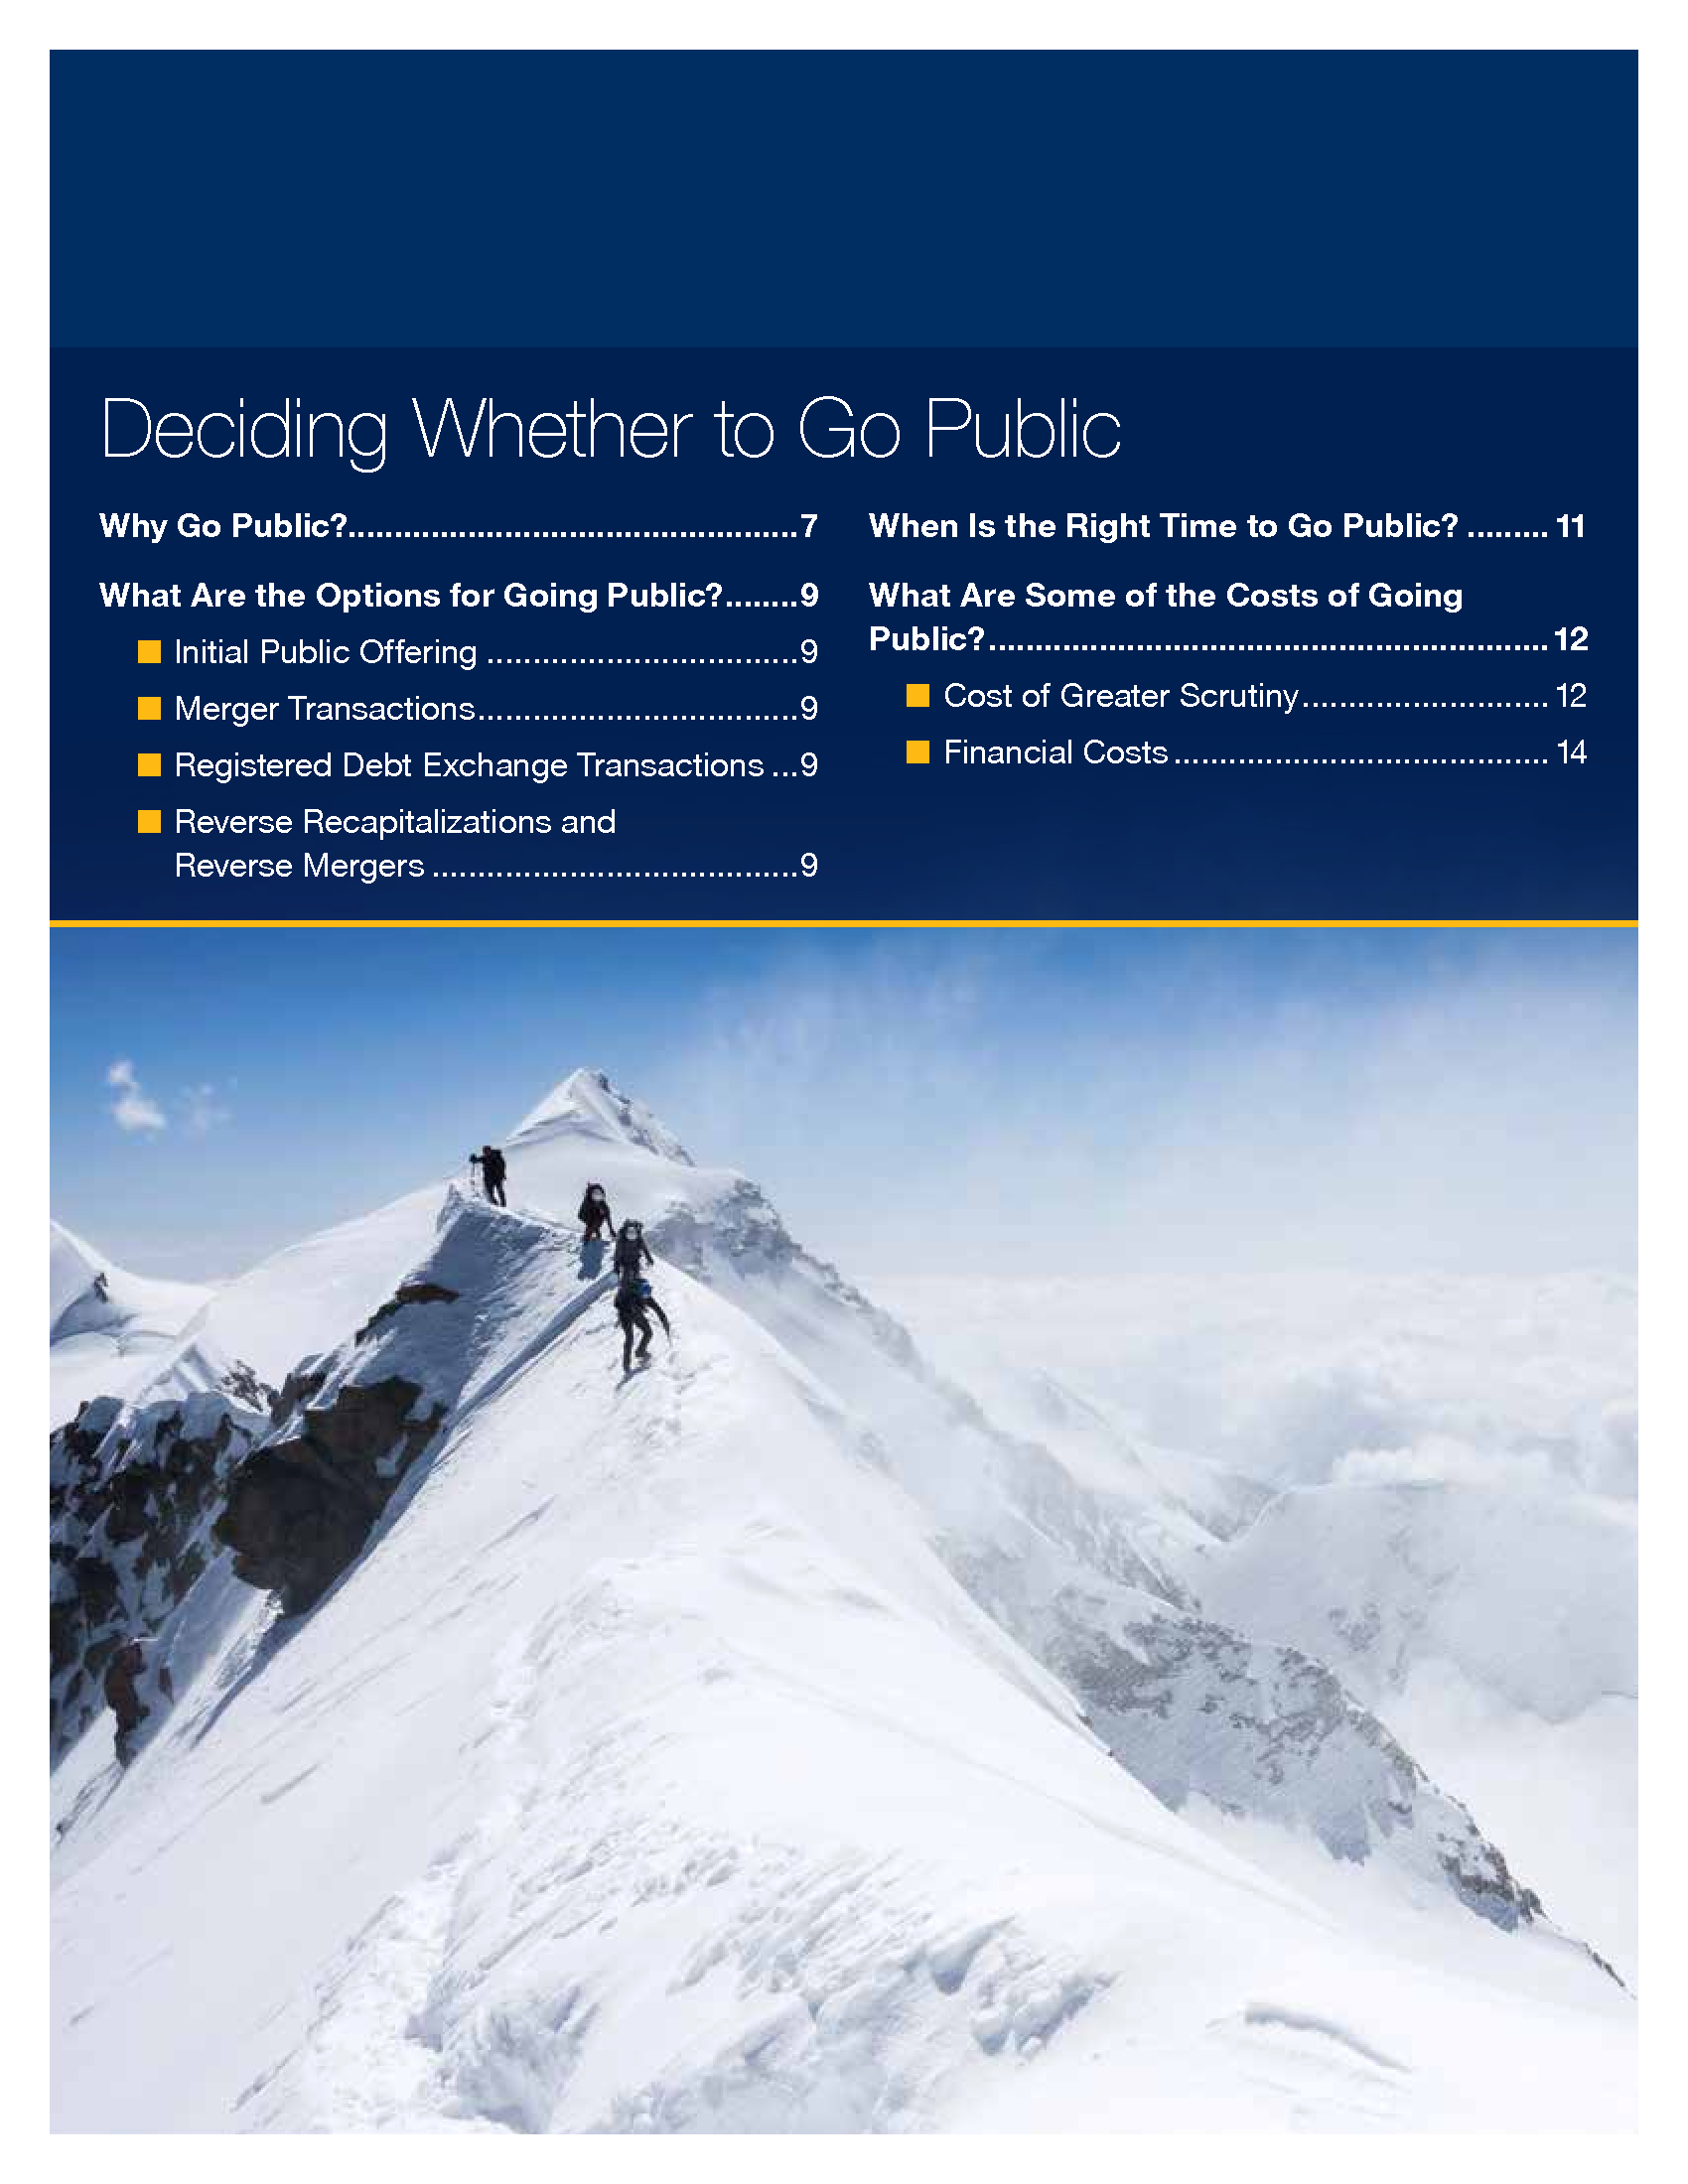 Advisorselect - Reaching the Pinnacle - A Guide to Going Public and